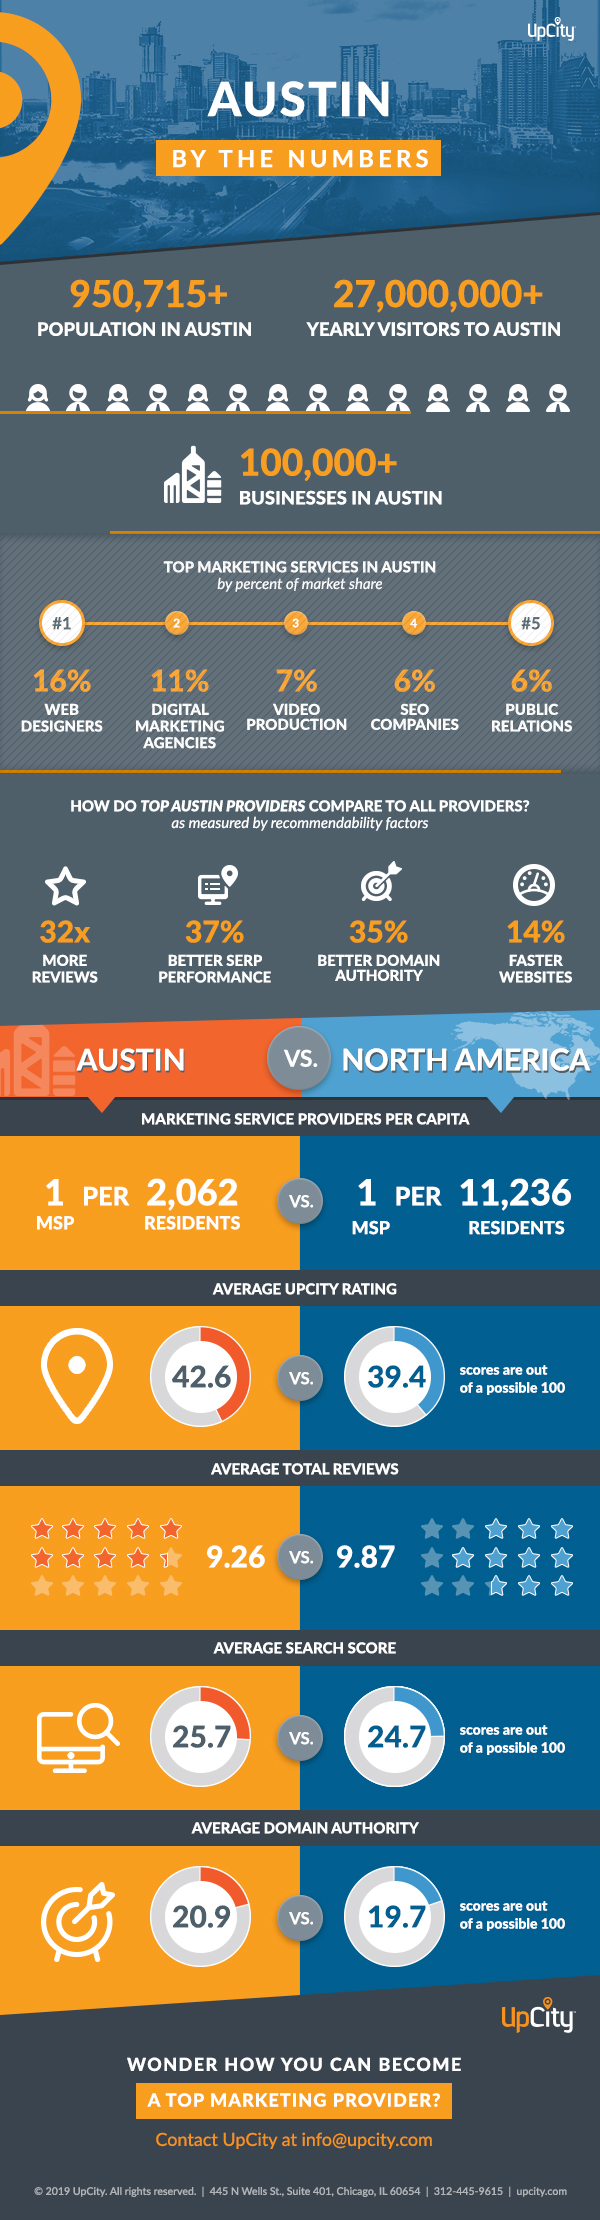 UpCity Austin by the Numbers-Get Insights into Top Performing Marketers in Austin